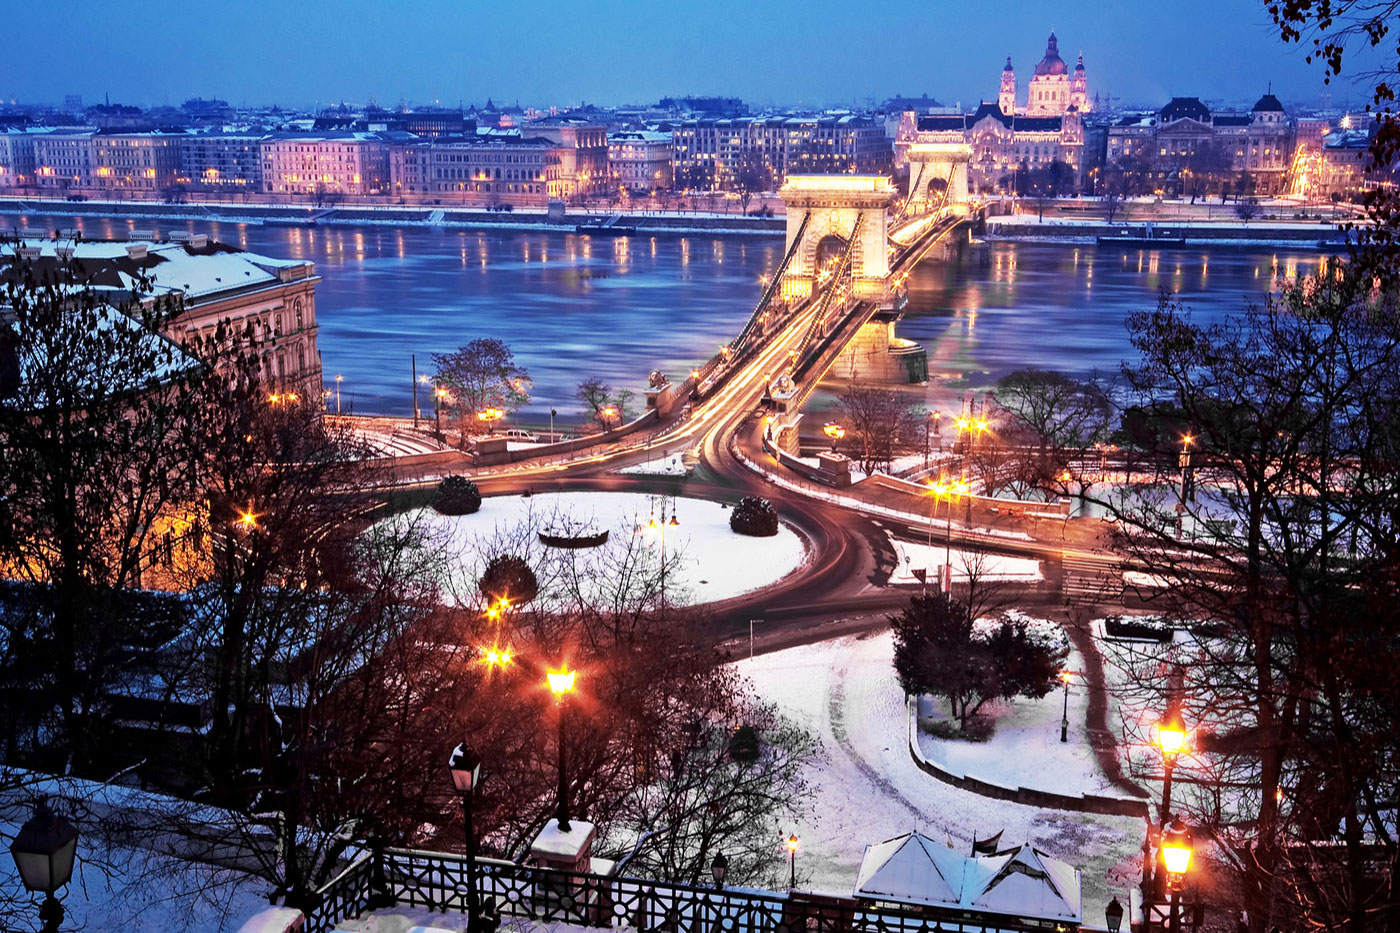 Wonderful view over Budapest at night with snow